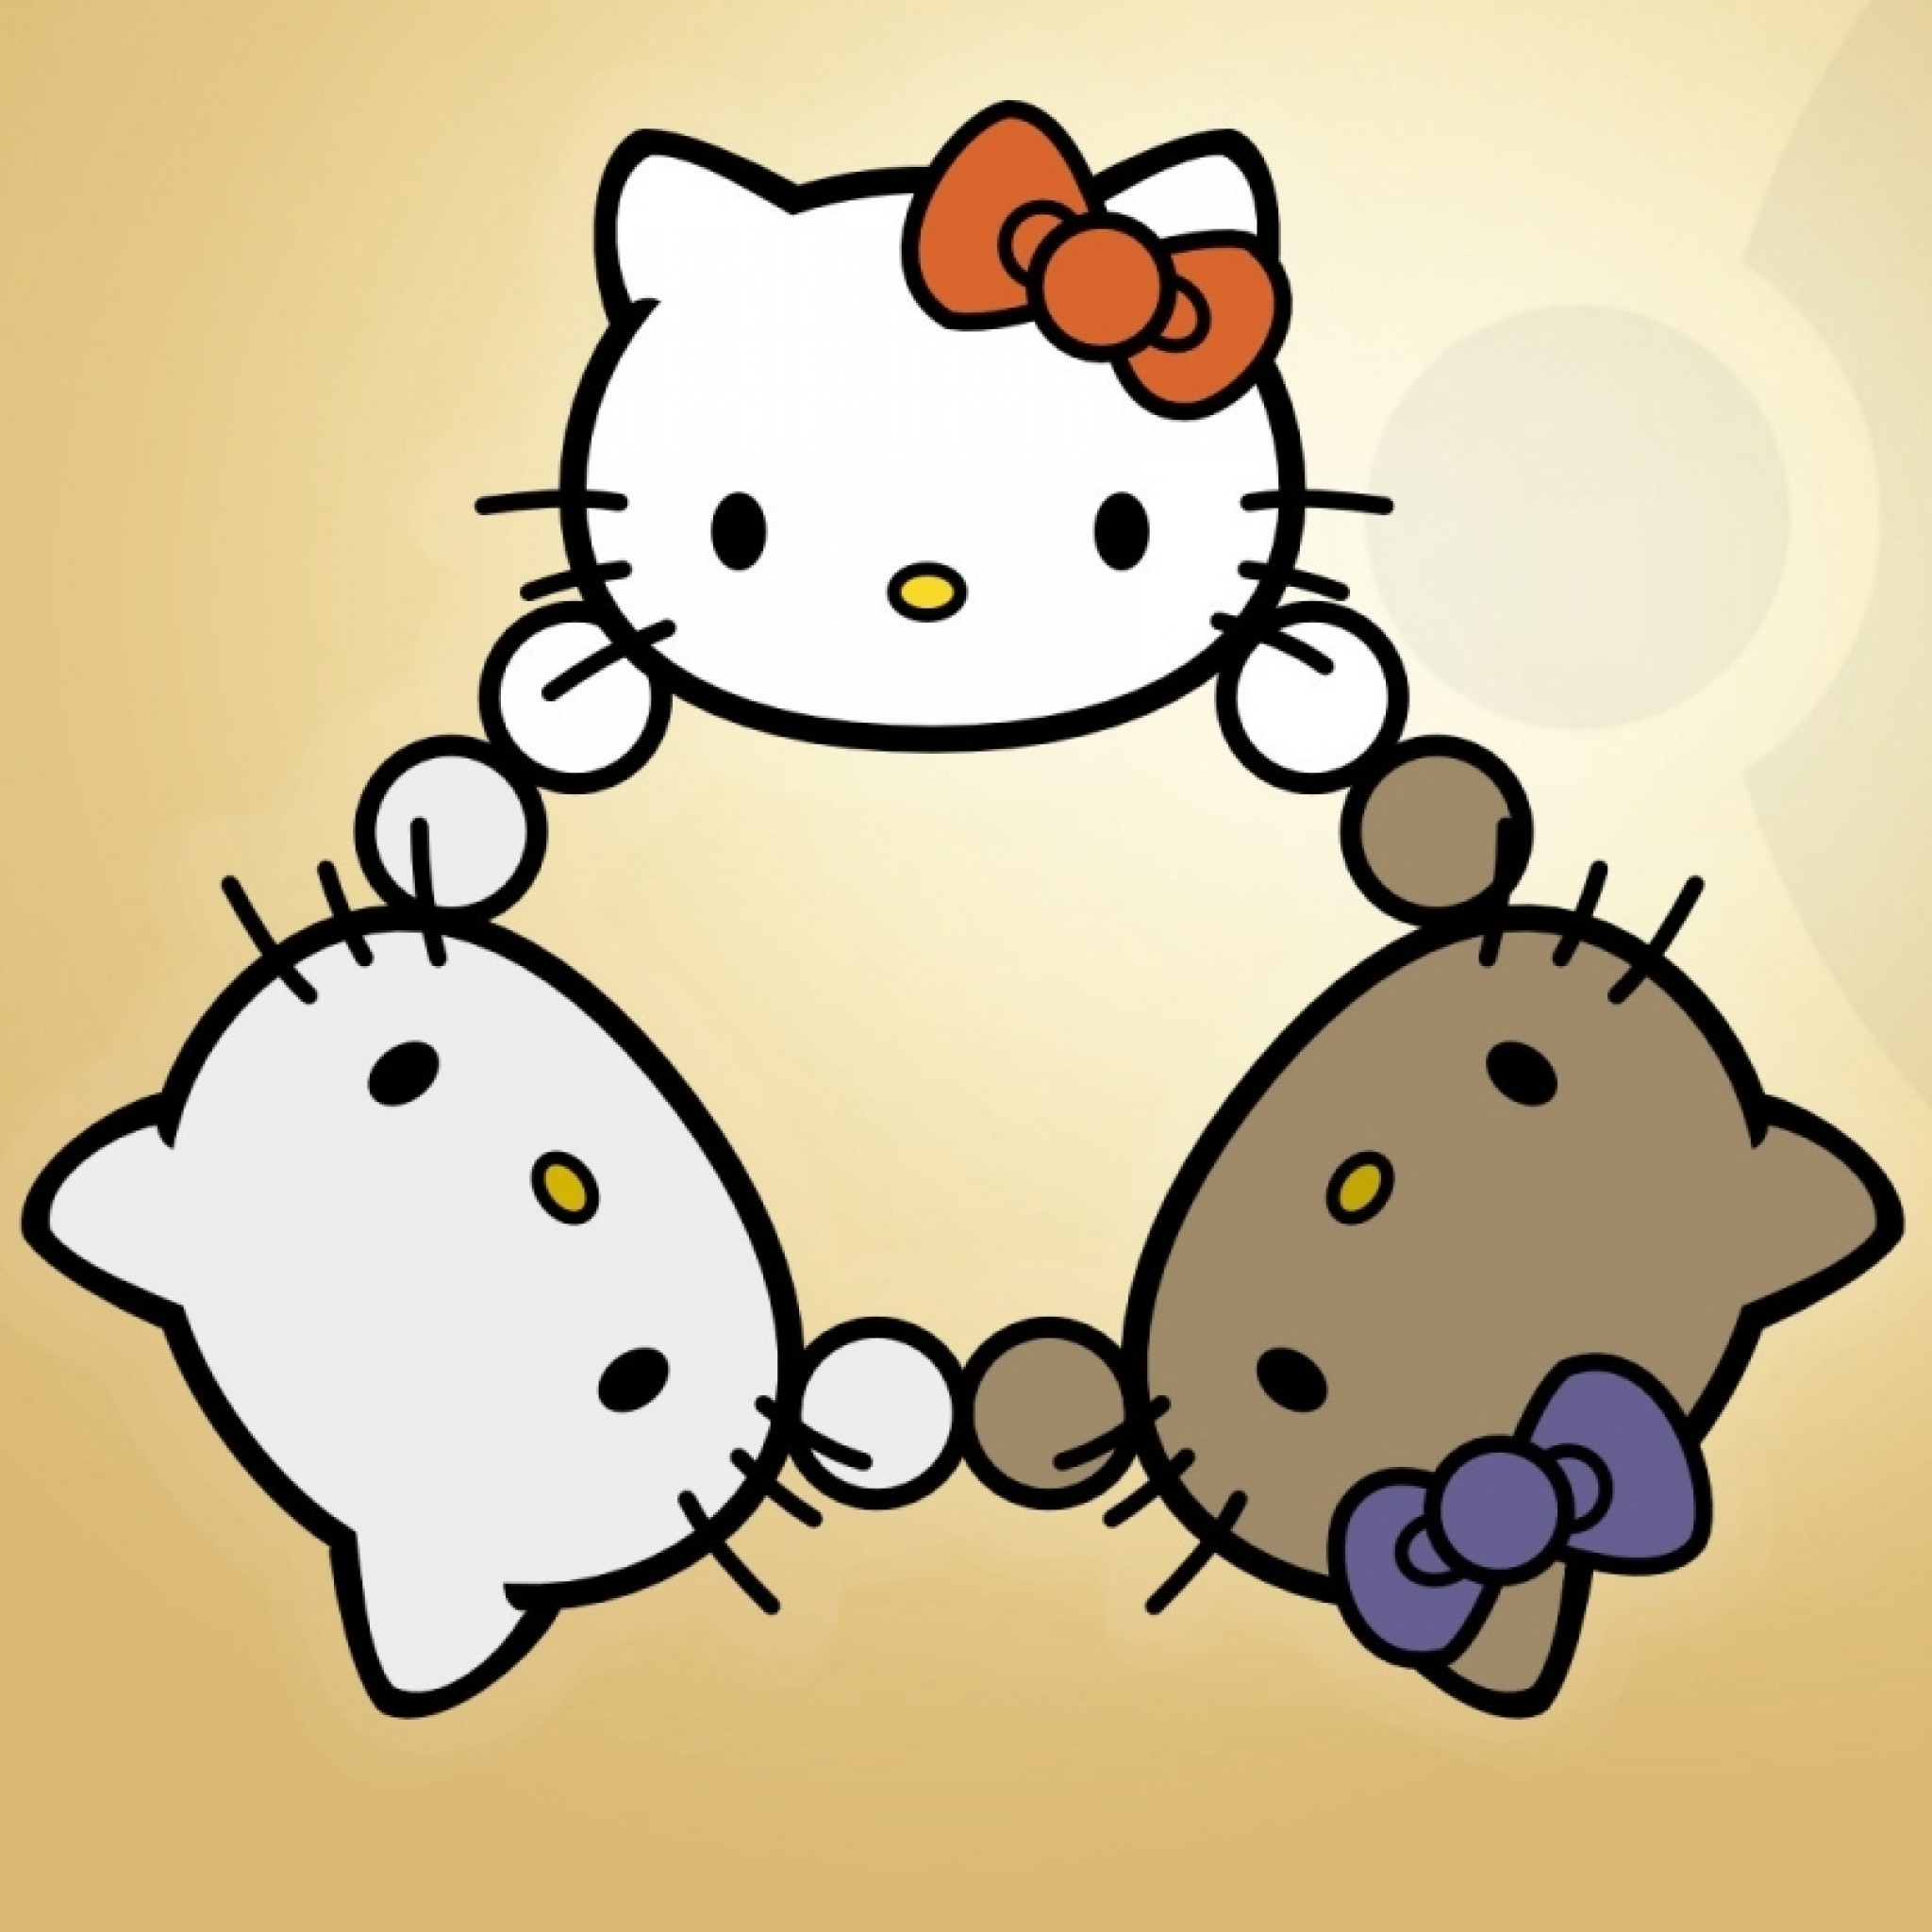 Hello Kitty Play – Tap to see more cute hello kitty wallpapers! – @mobile9